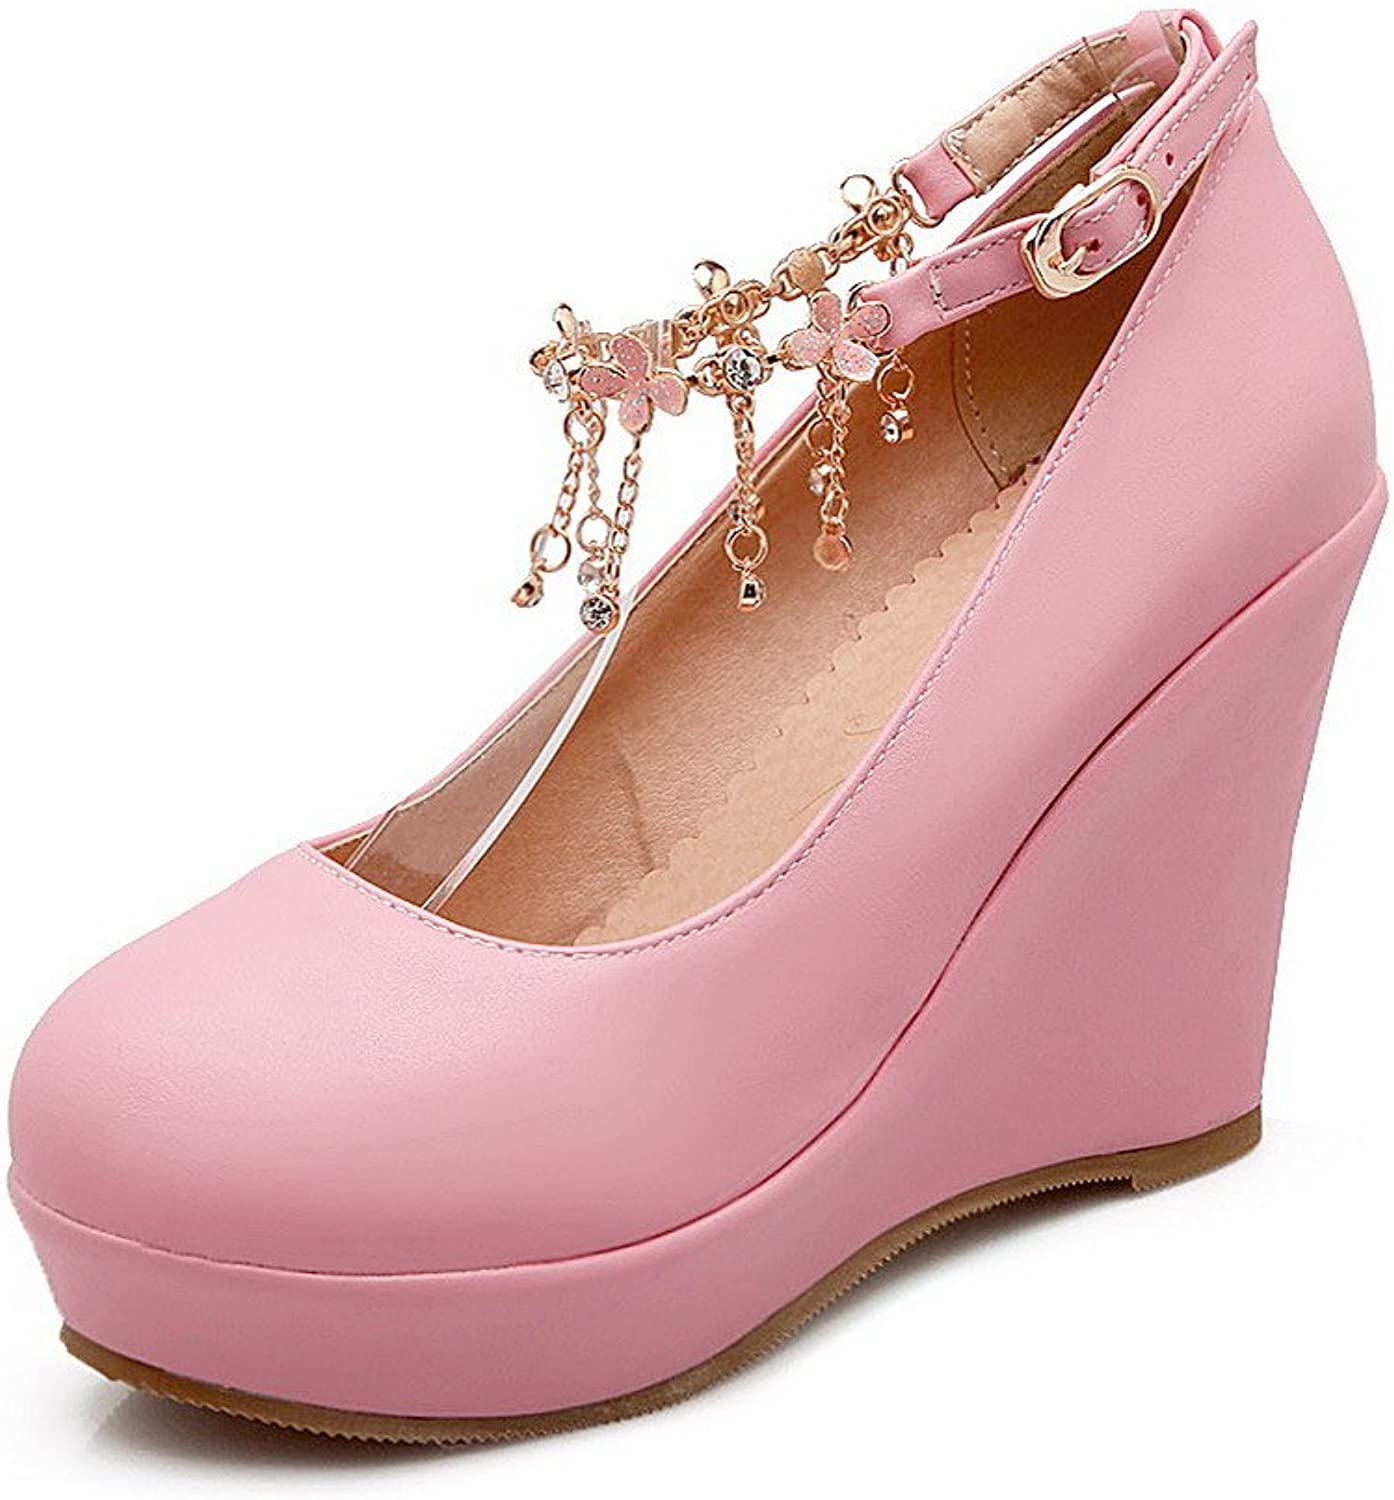 WeenFashion Women's Round Closed Toe Buckle PU Solid High-Heels Pumps-shoes